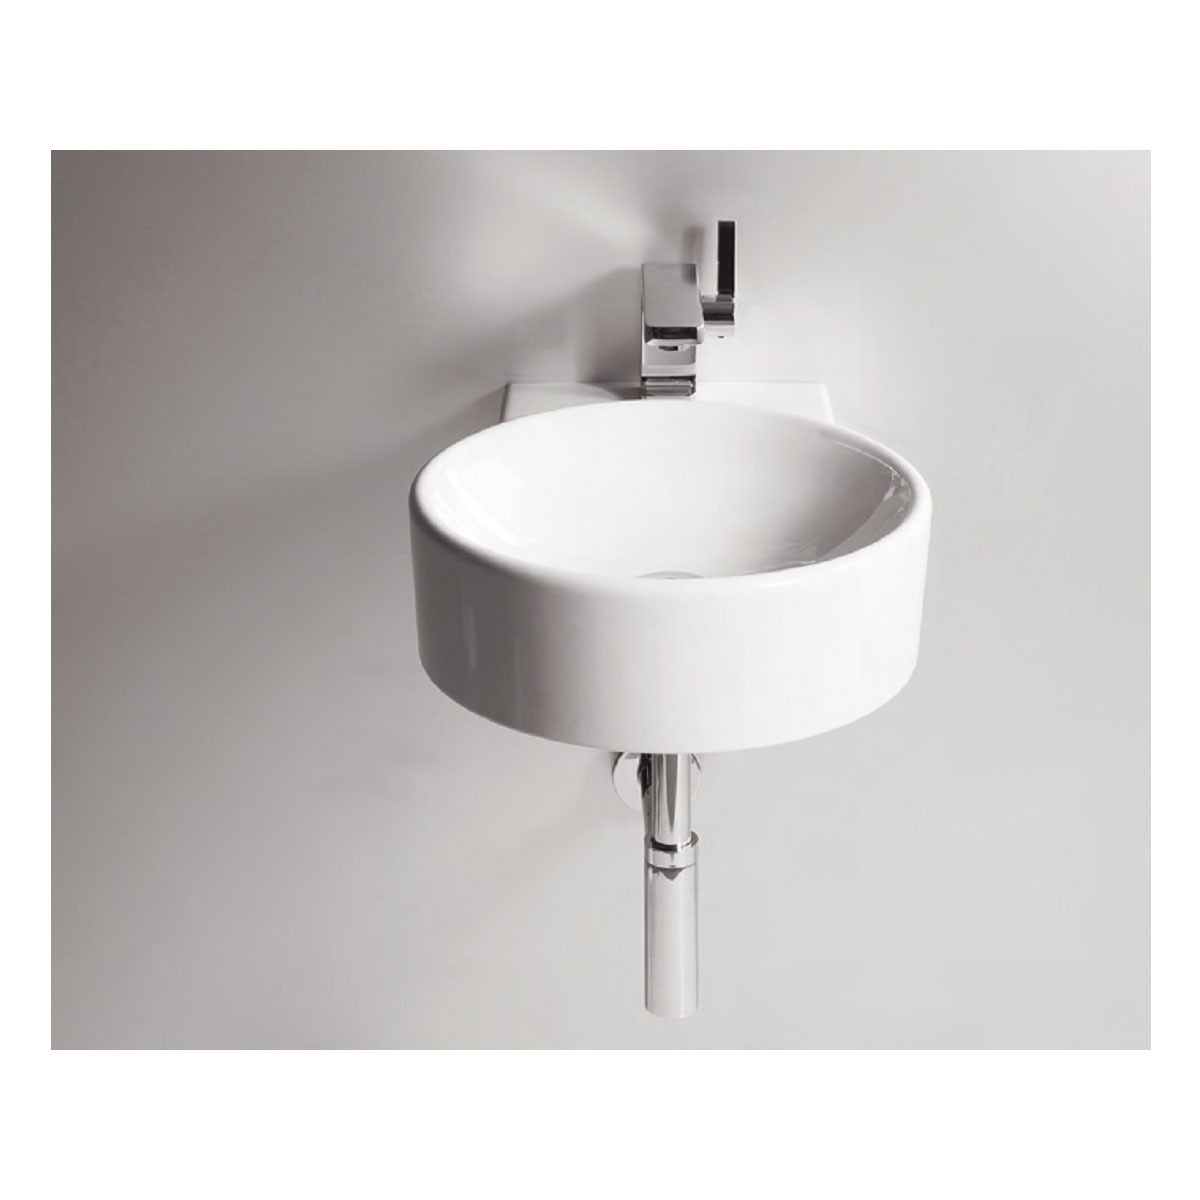 Parisi SMFL141 Flow 14 500mm Wall Basin